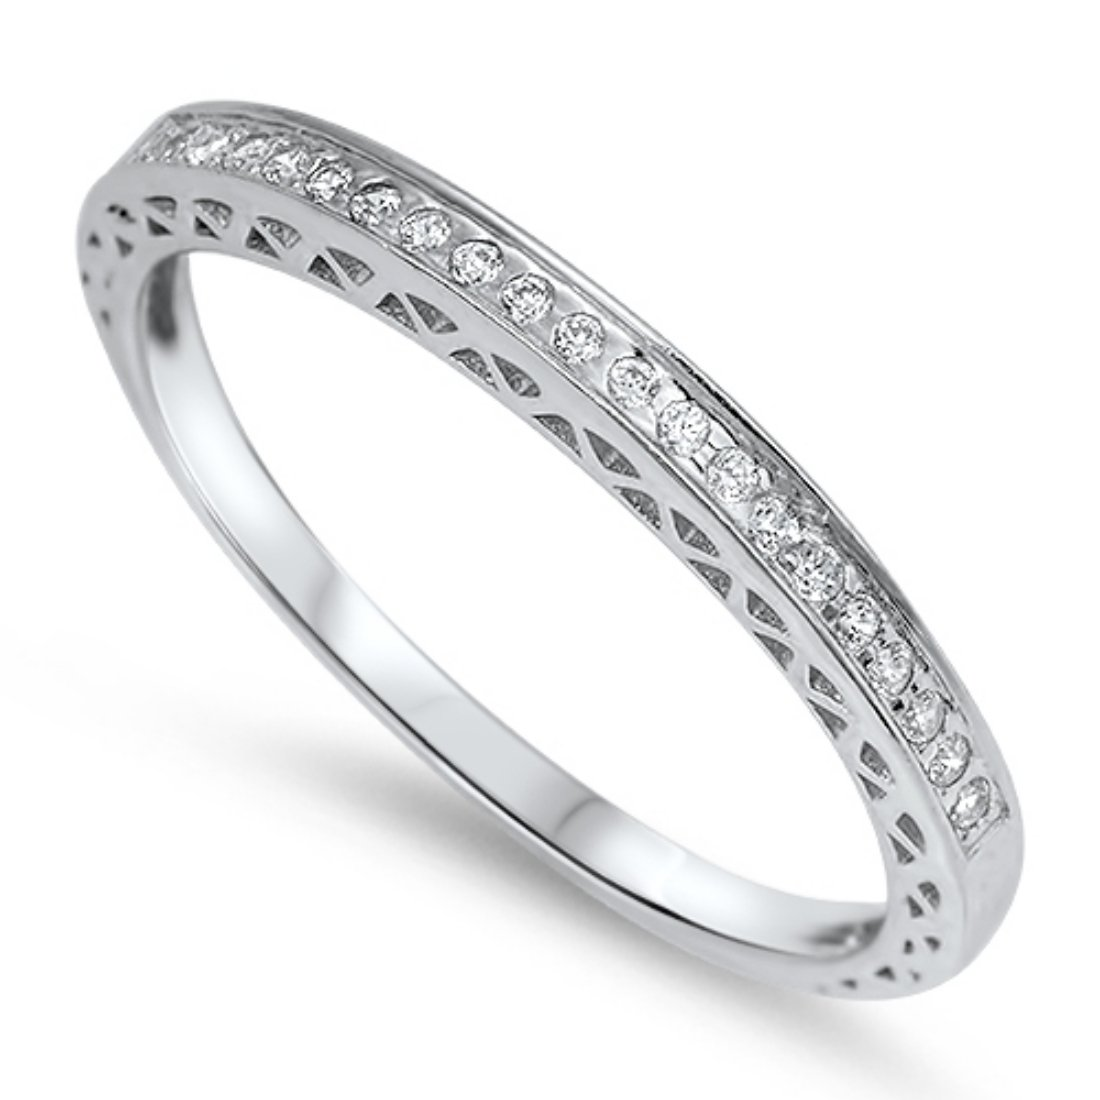 2mm Thin Half Eternity Band Ring Round Cubic Zirconia 925 Sterling Silver Band for Ring Wedding 4-10